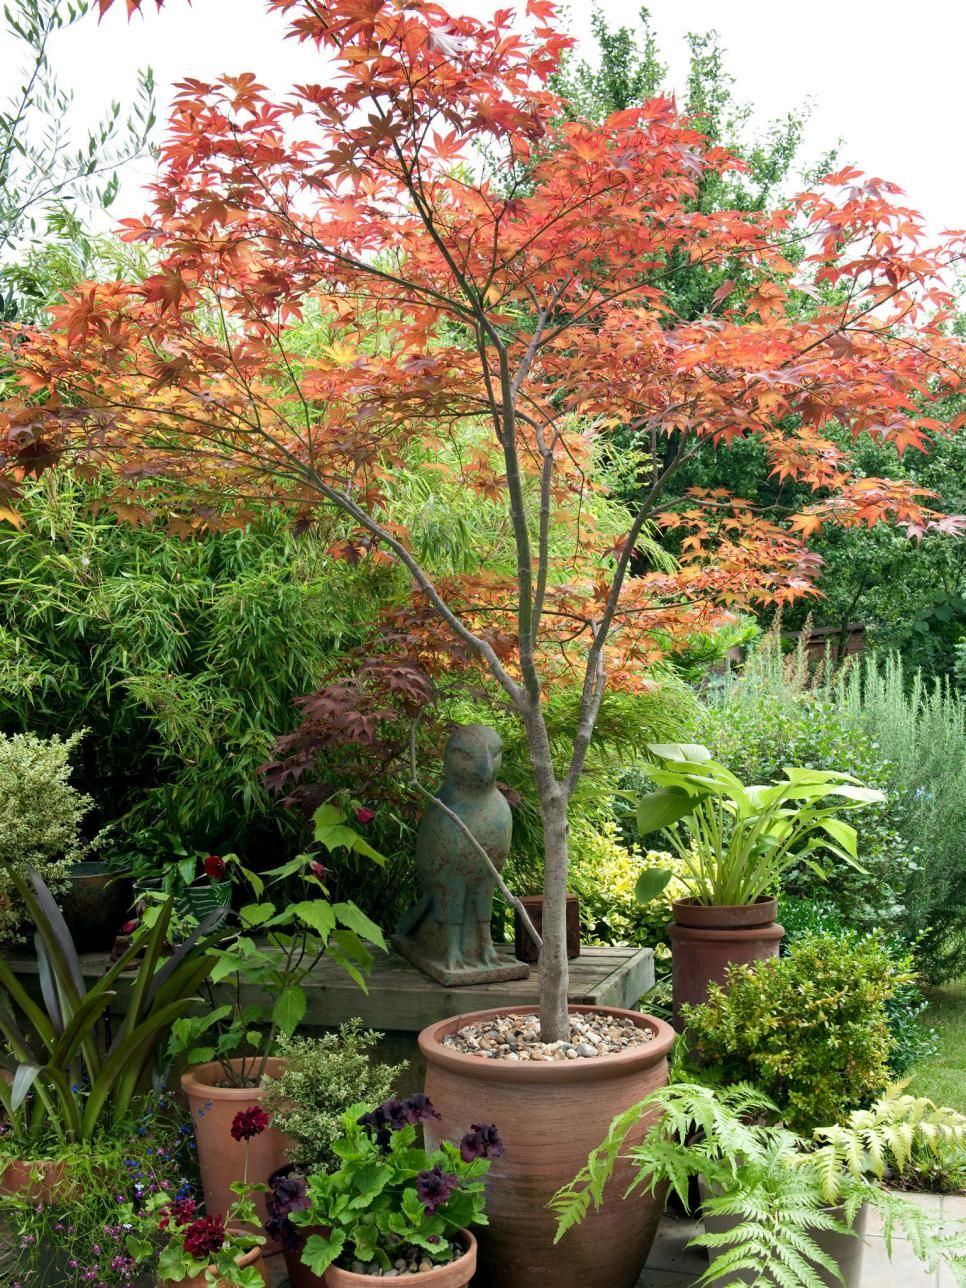 Get Planting And Growing Information For Small Trees That Thrive In The  Shade From The Experts